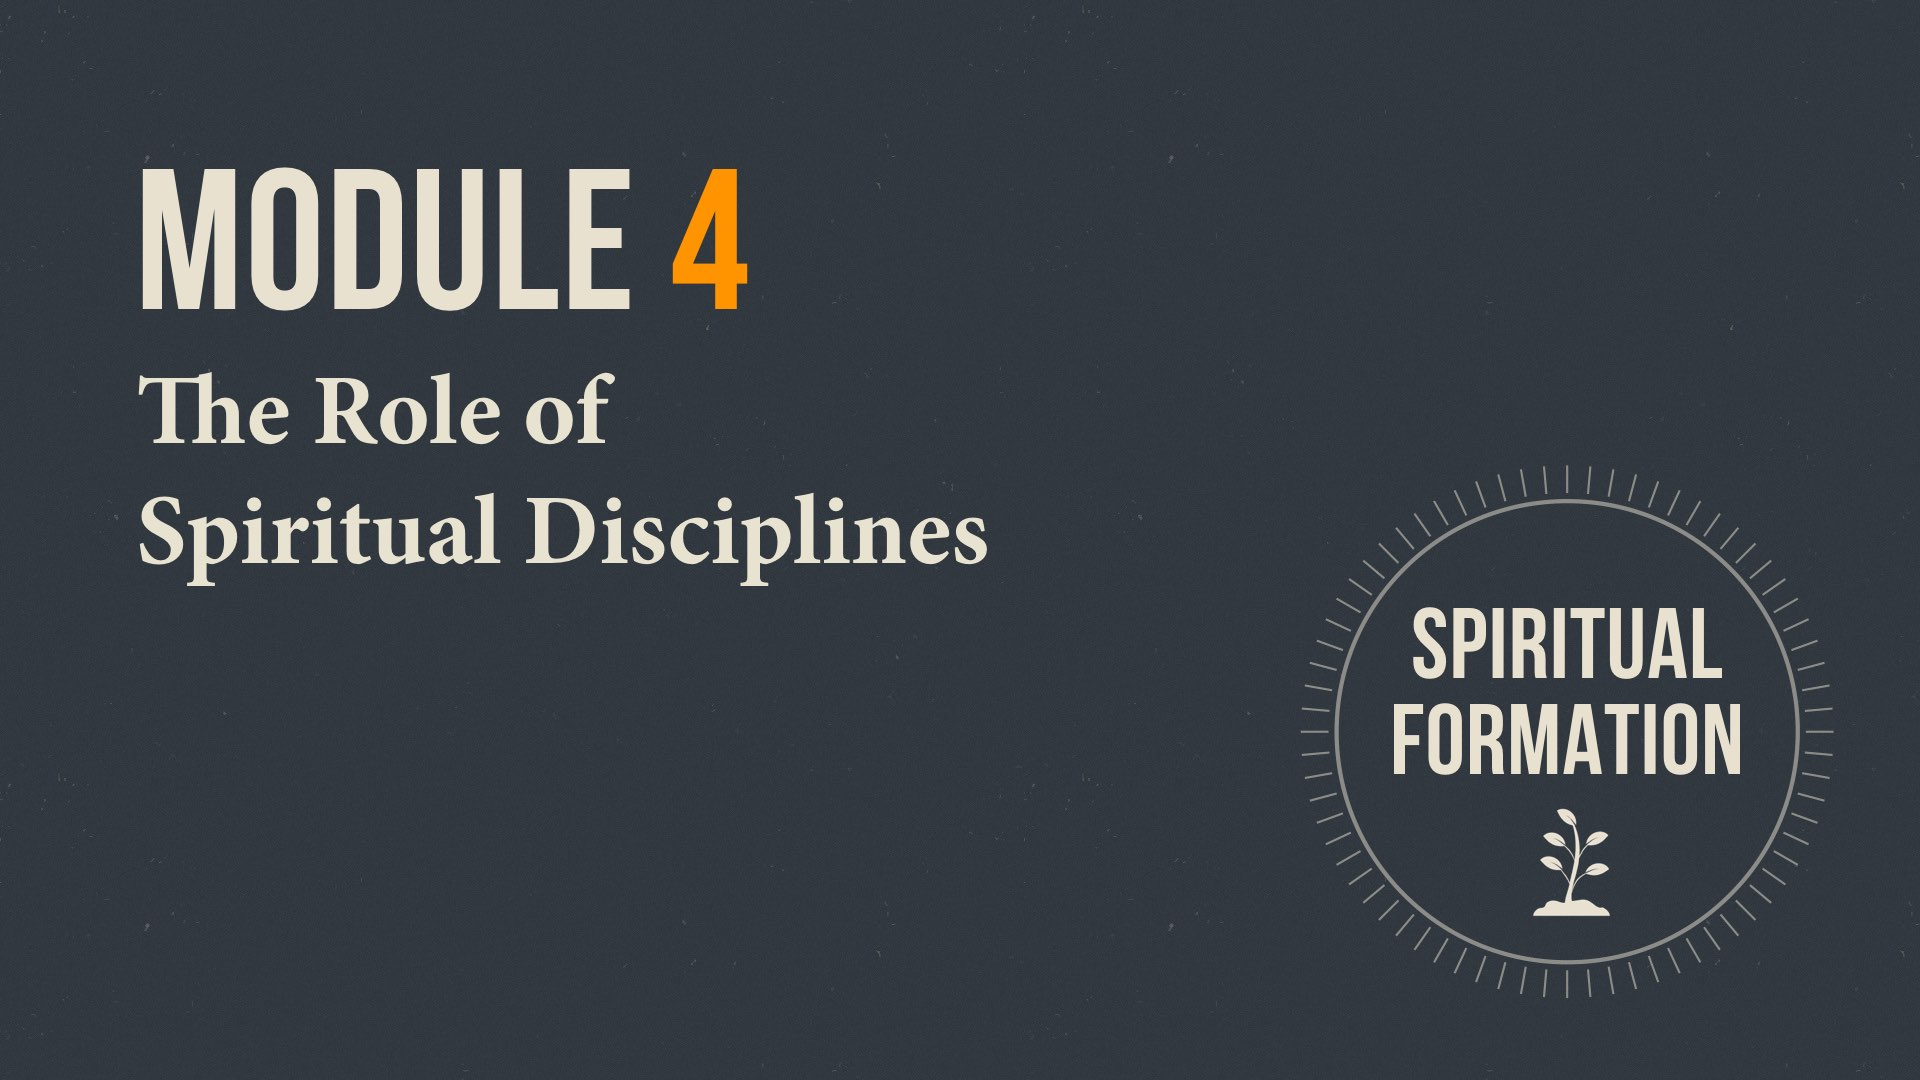 Module 4 Title Slide - The Role of Spiritual Disciplines